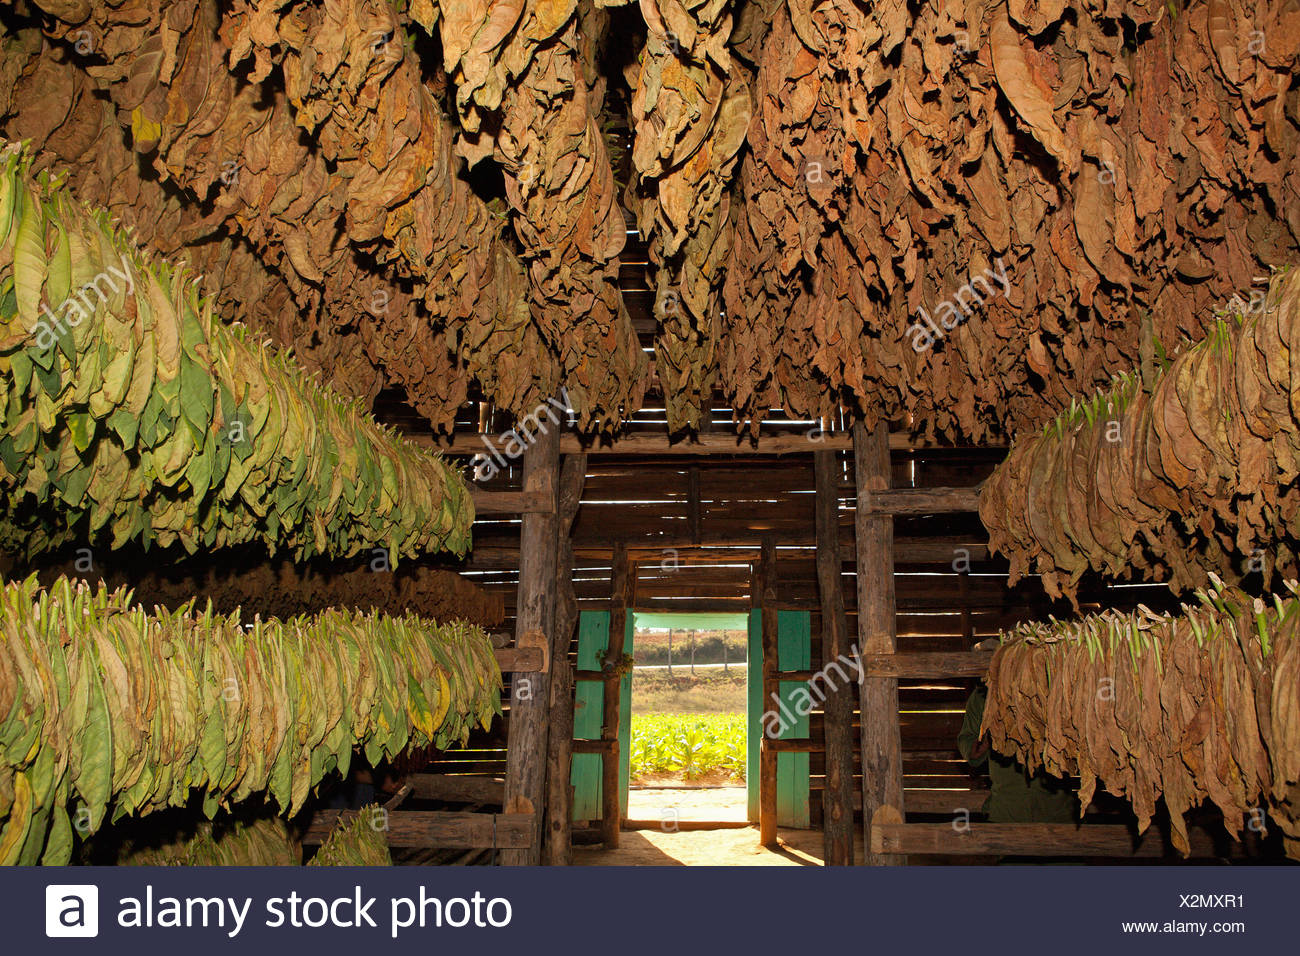 PINAR DEL RIO: TOBACCO LEAVES DRYING SHED IN VINALES - Stock Image